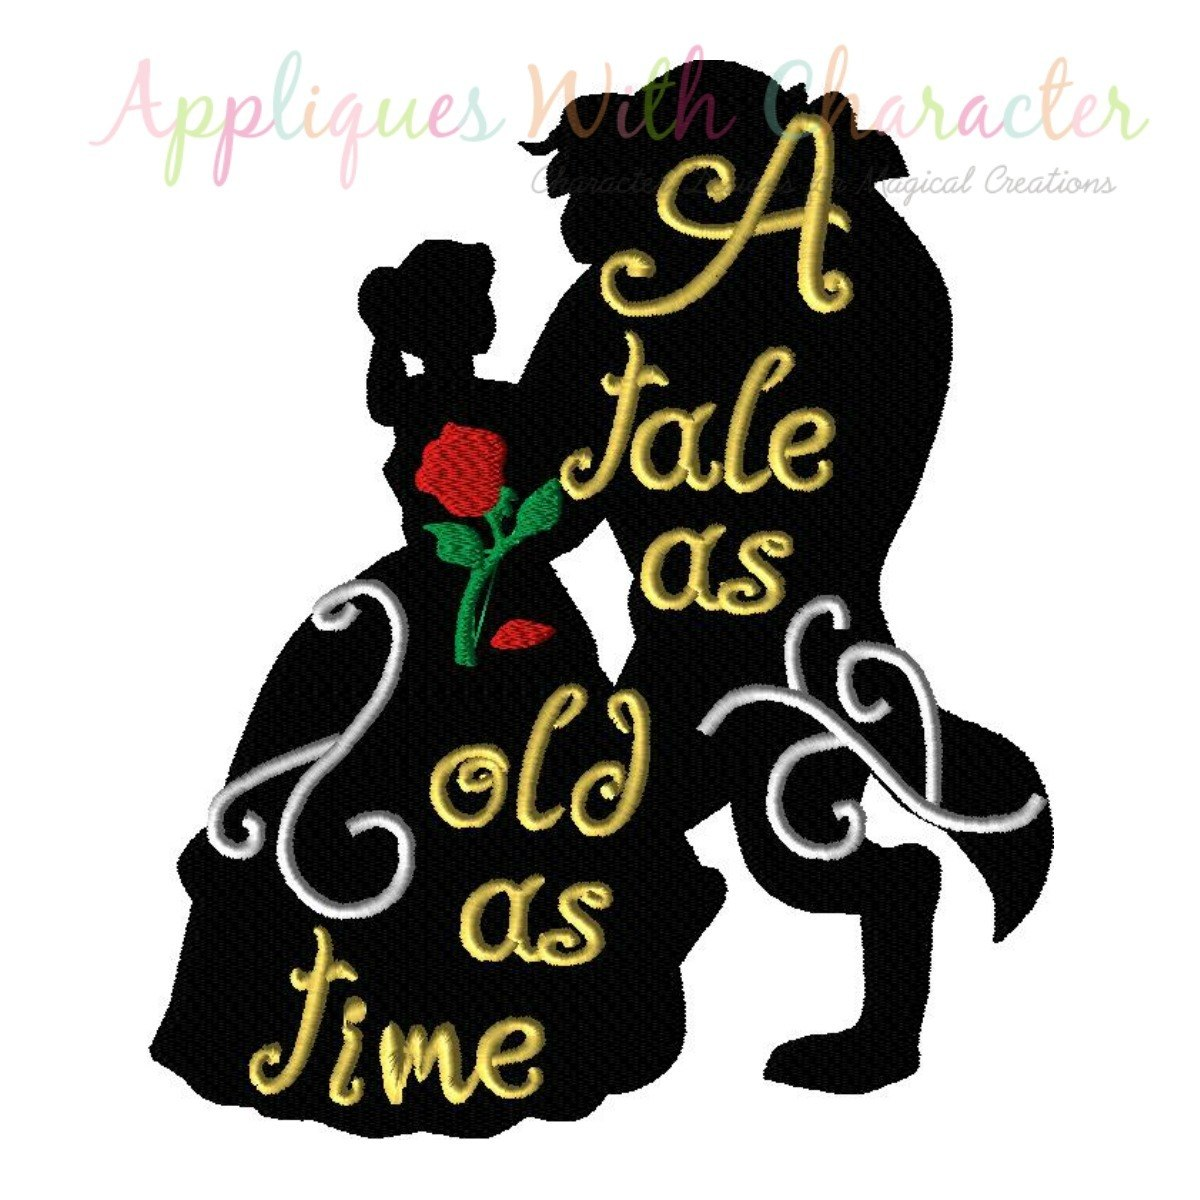 1200x1200 Tale As Old As Time Silhouette Embroidery Design By Appliques